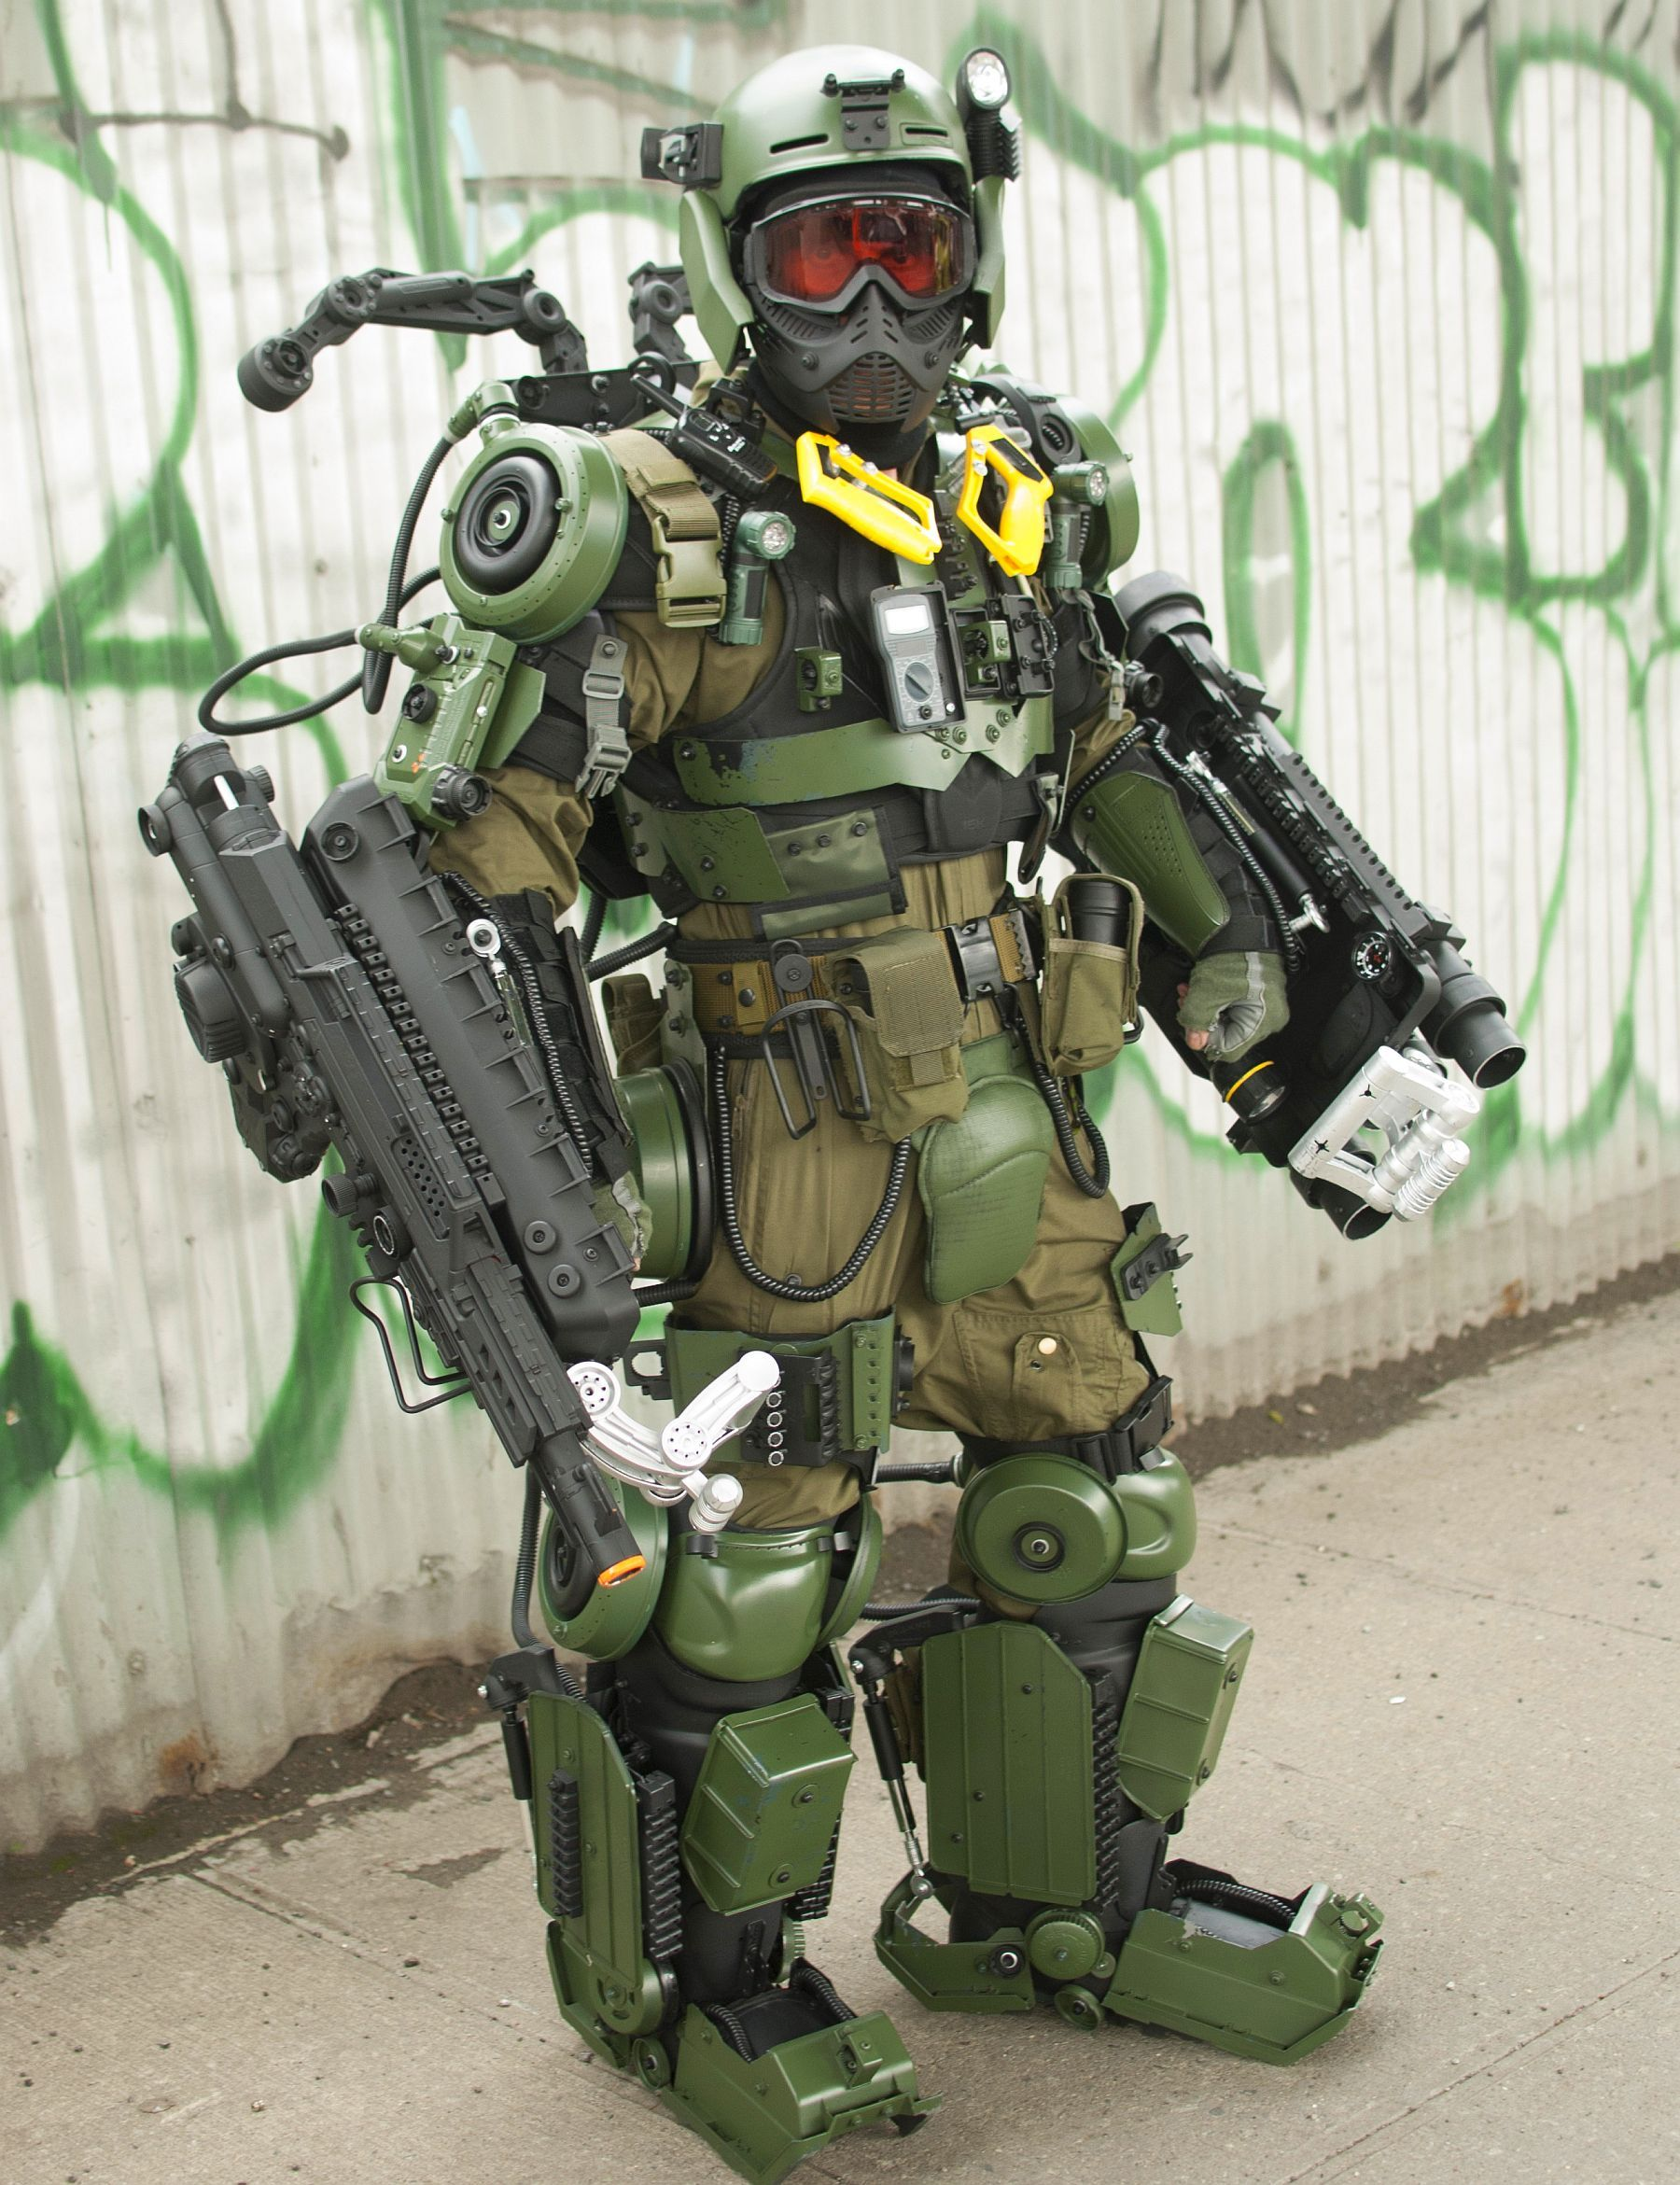 Exo suit cosplay inspired by Edge of Tomorrow - Nerd Reactor Military Exosuit